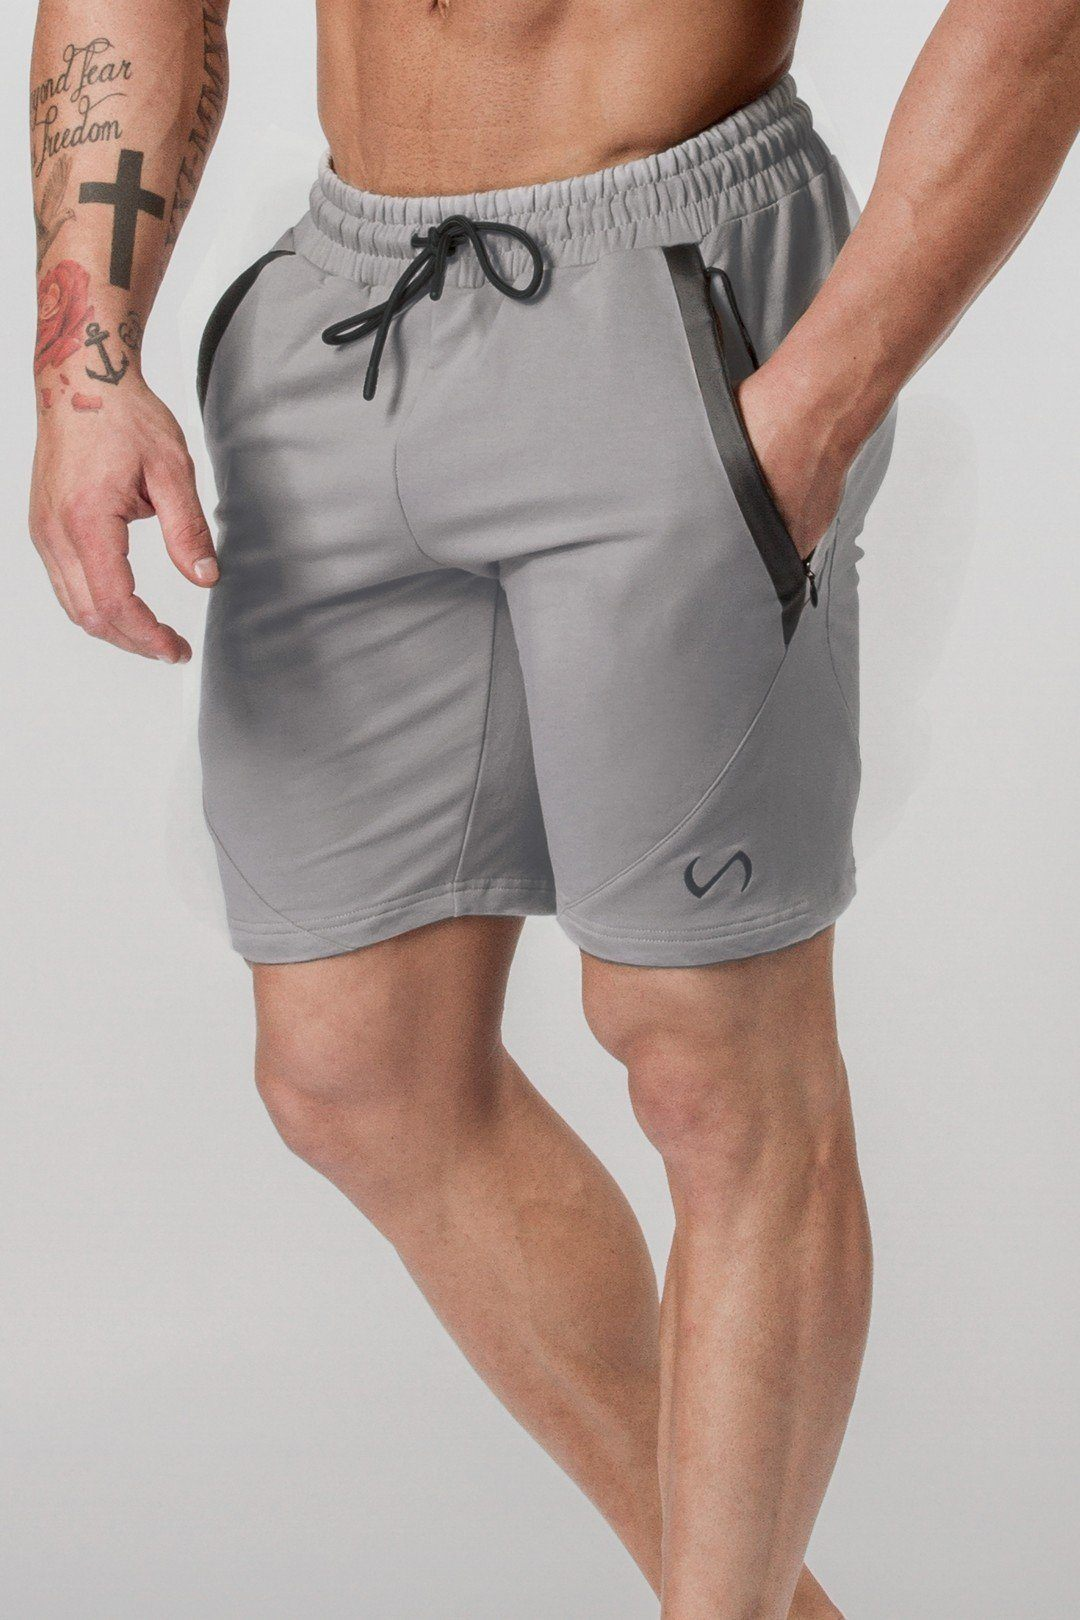 TLF Iron Shorts - Shorts - TLF Apparel | Take Life Further